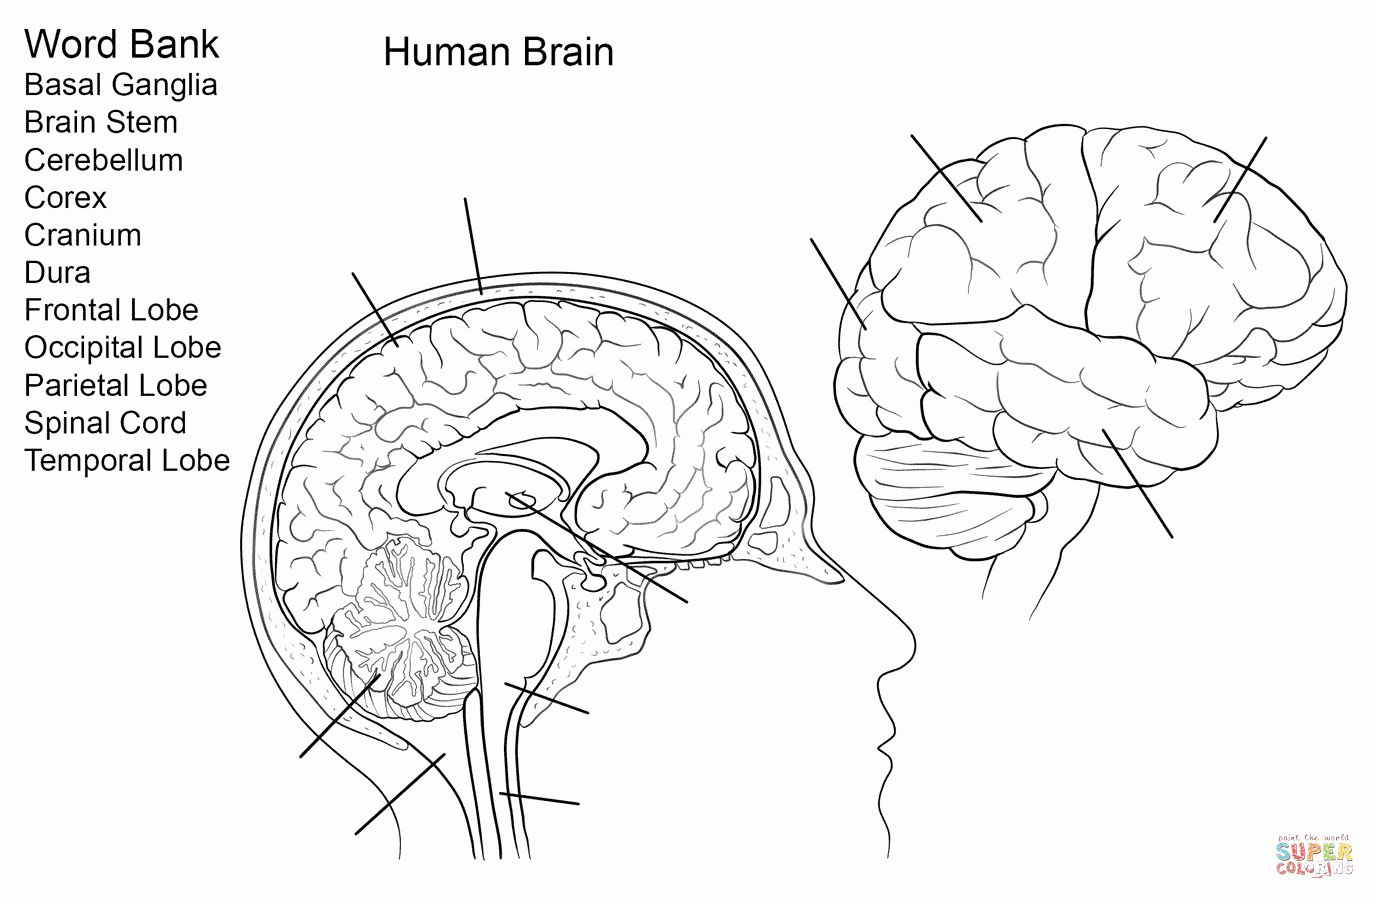 The Human Brain Coloring Book Inspirational Human Brain